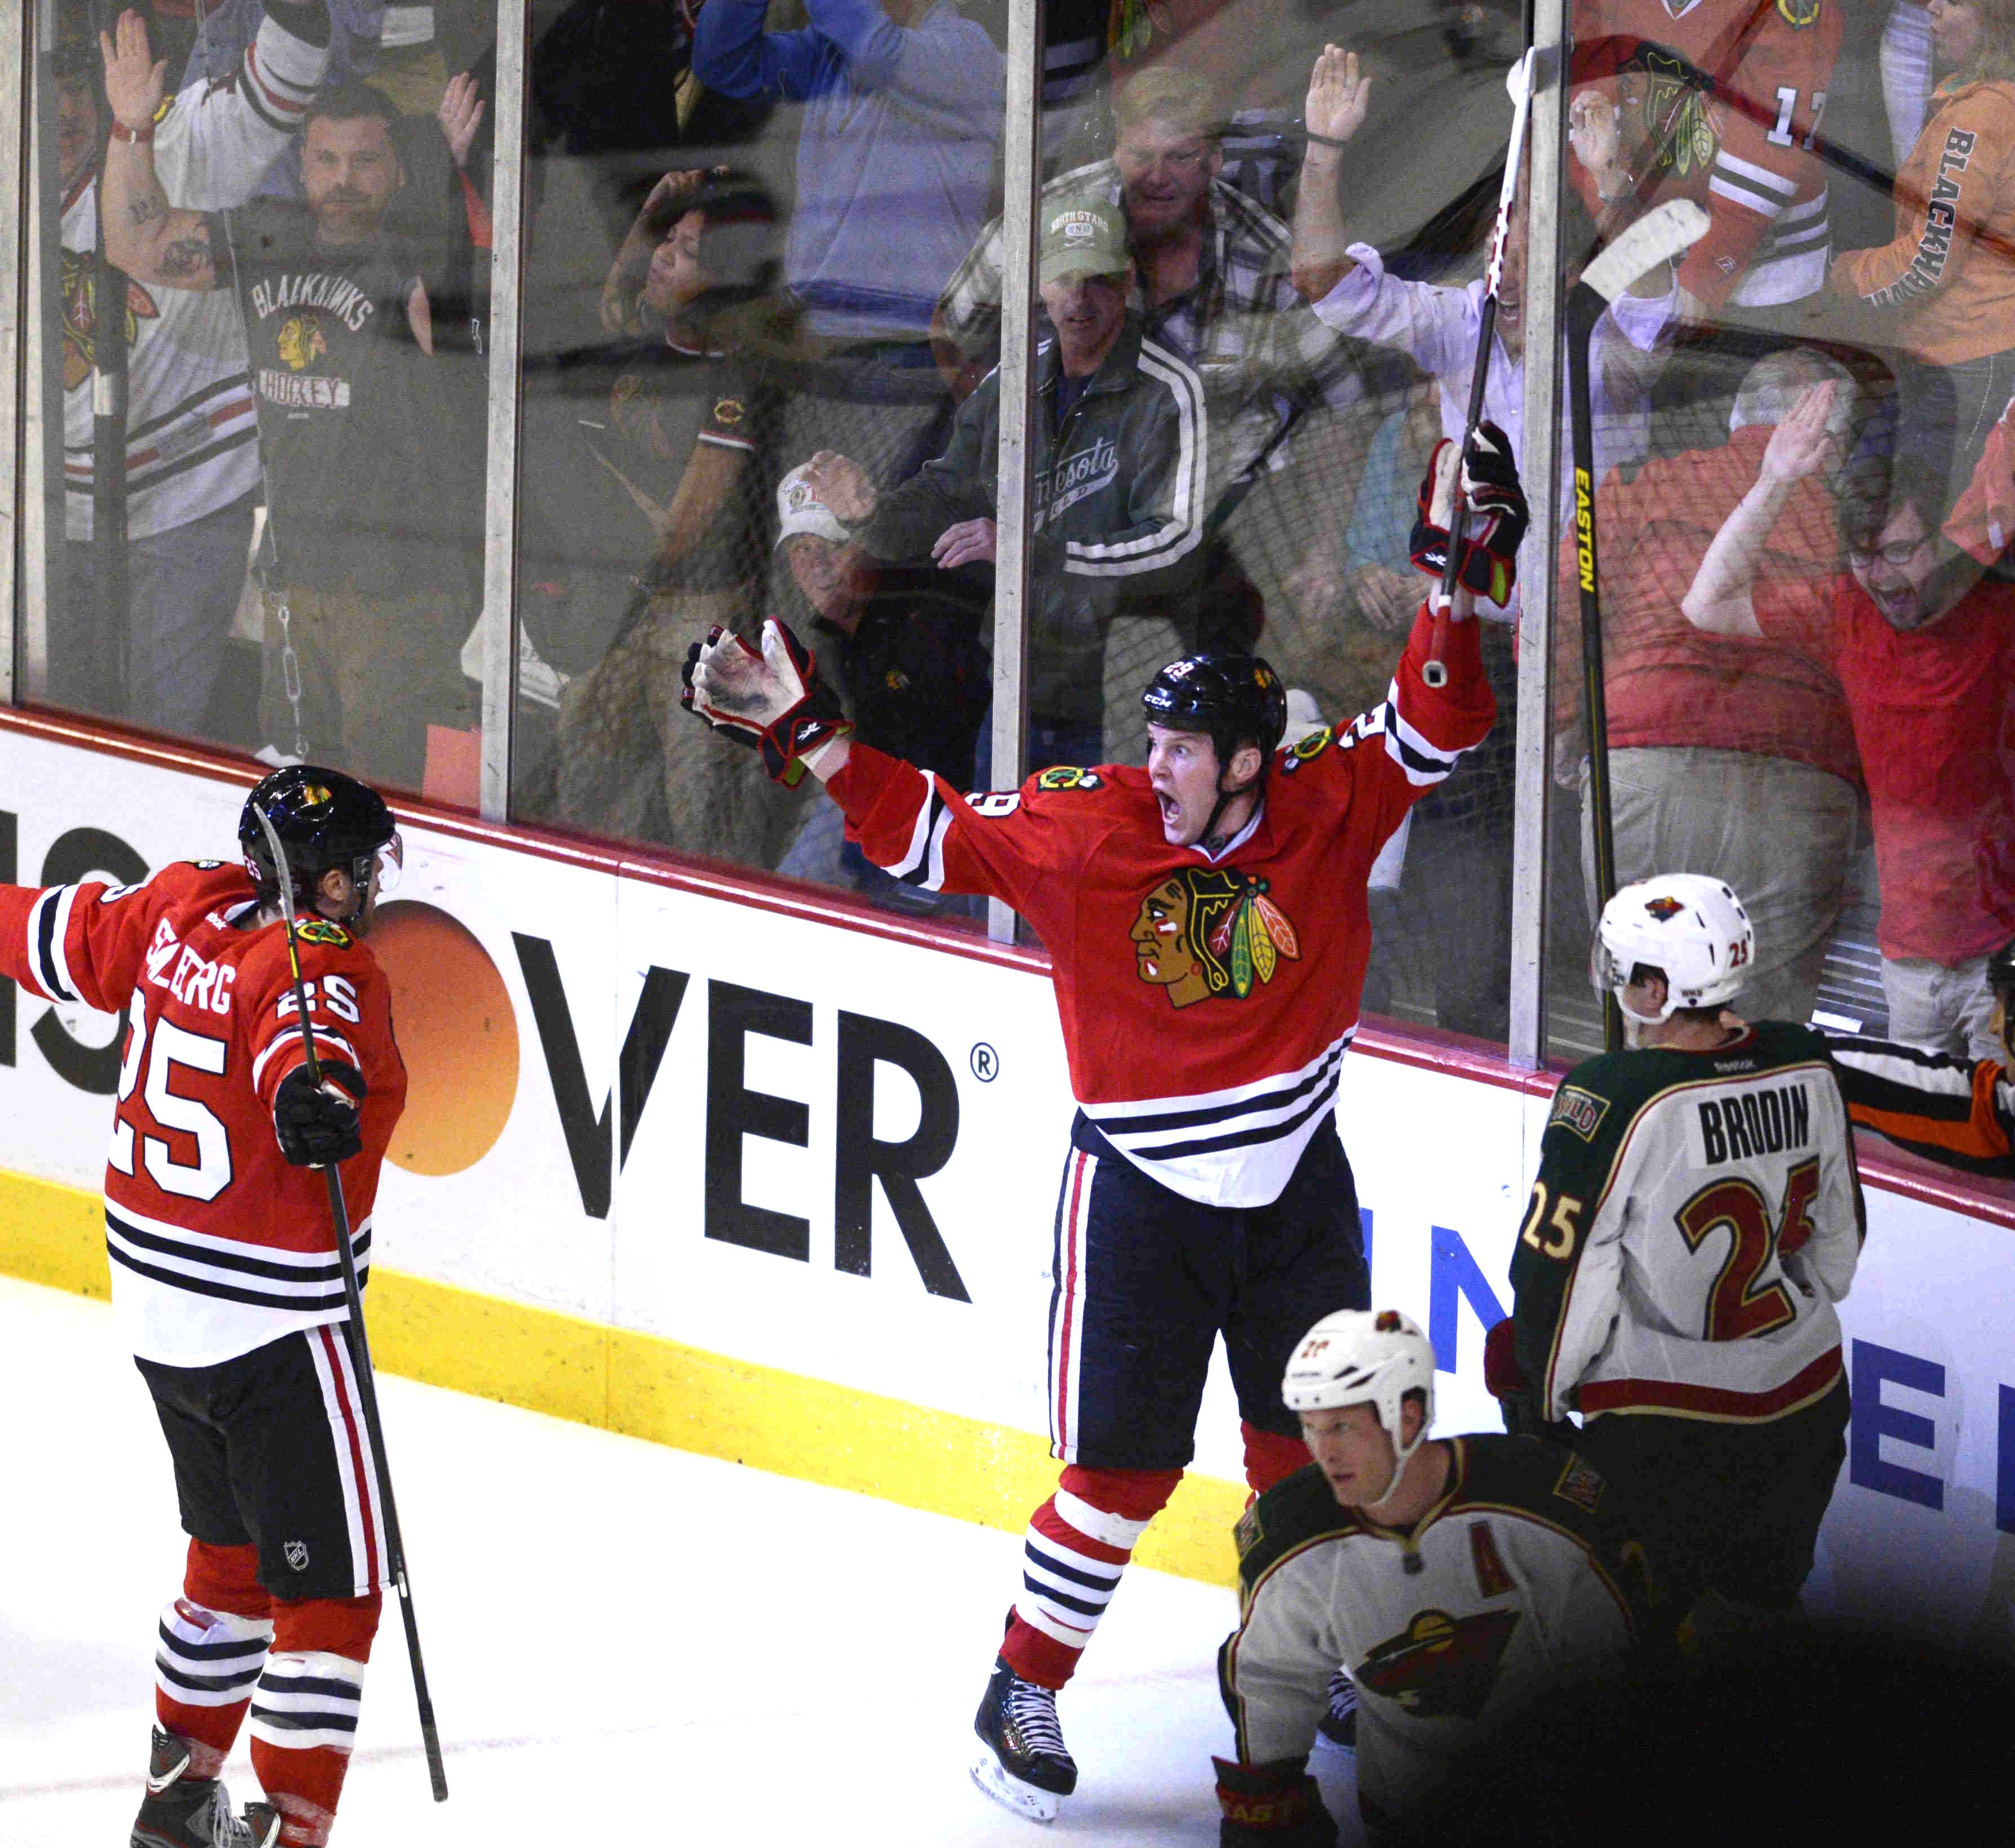 Chicago Blackhawks left wing Bryan Bickell turns to teammate Chicago Blackhawks left wing Viktor Stalberg after scoring the winning goal Tuesday in Game 1 of the Western Conference first-round playoff series at the United Center in Chicago.